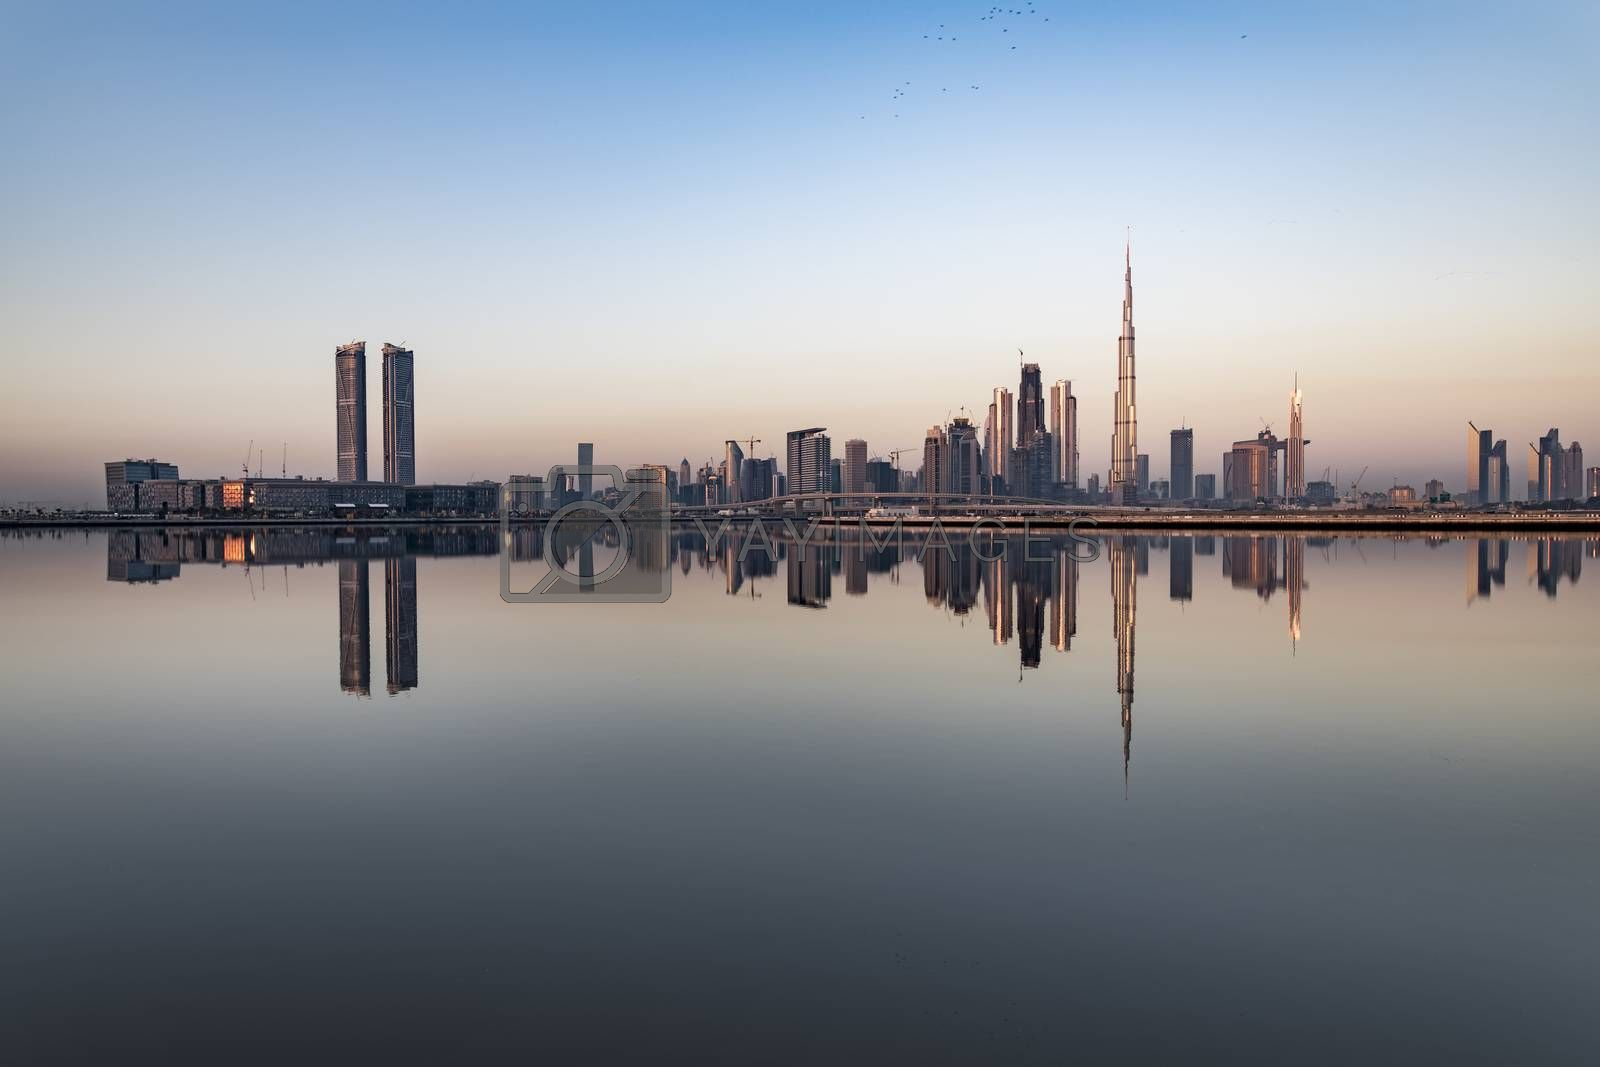 Royalty free image of Dubai skyline early morning, UAE by GABIS